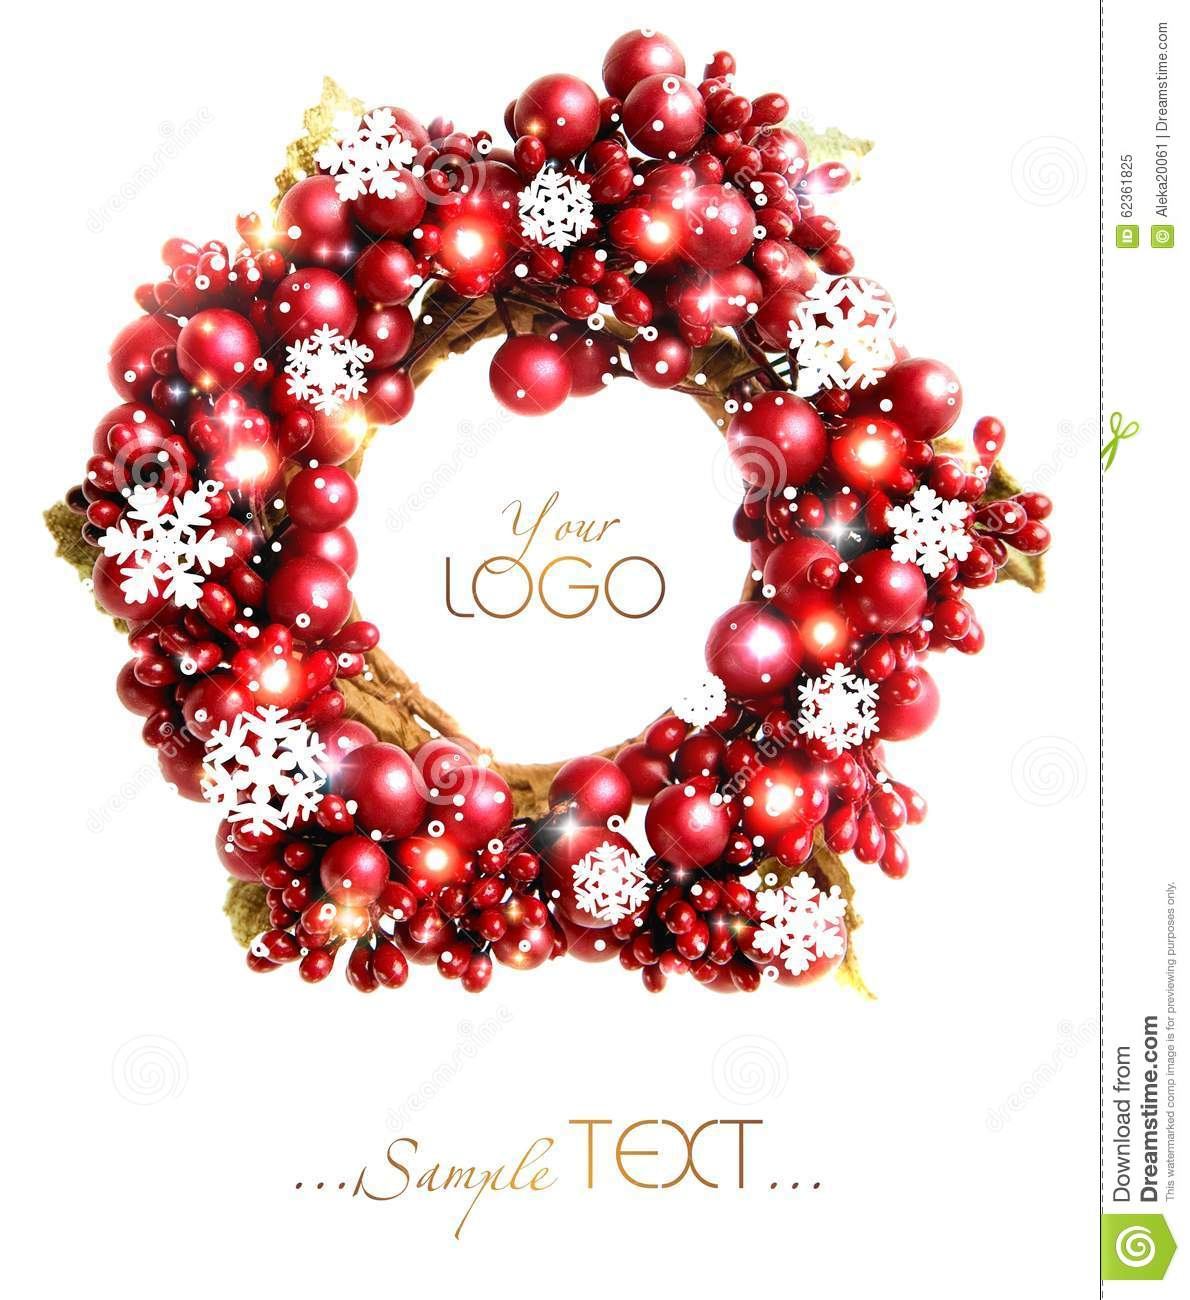 Christmas wreath from red berries isolated.